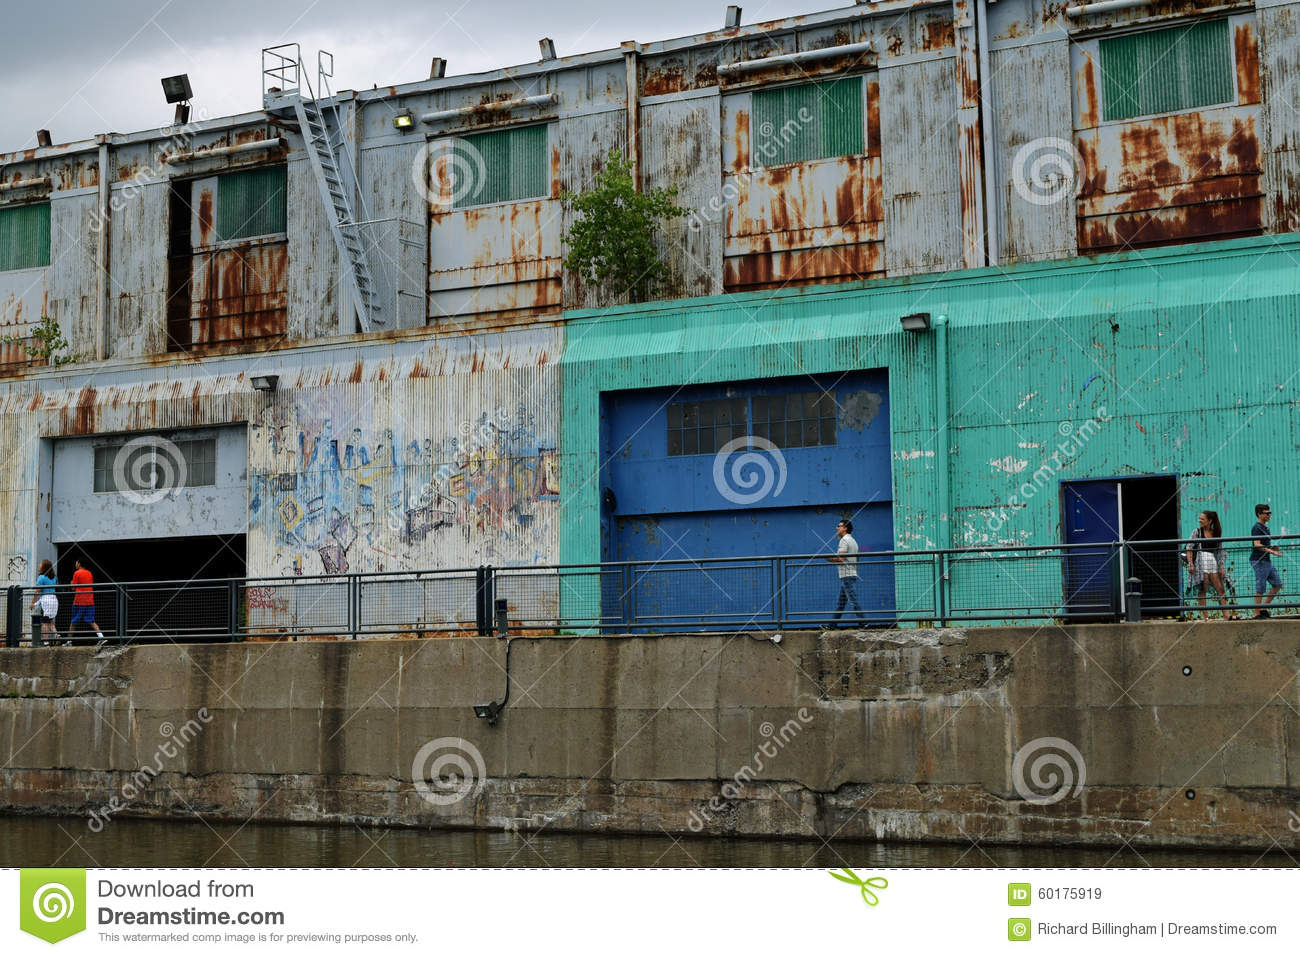 Old warehouse vieux port montreal quebec canada editorial stock image image 60175919 - Restaurants old port montreal ...